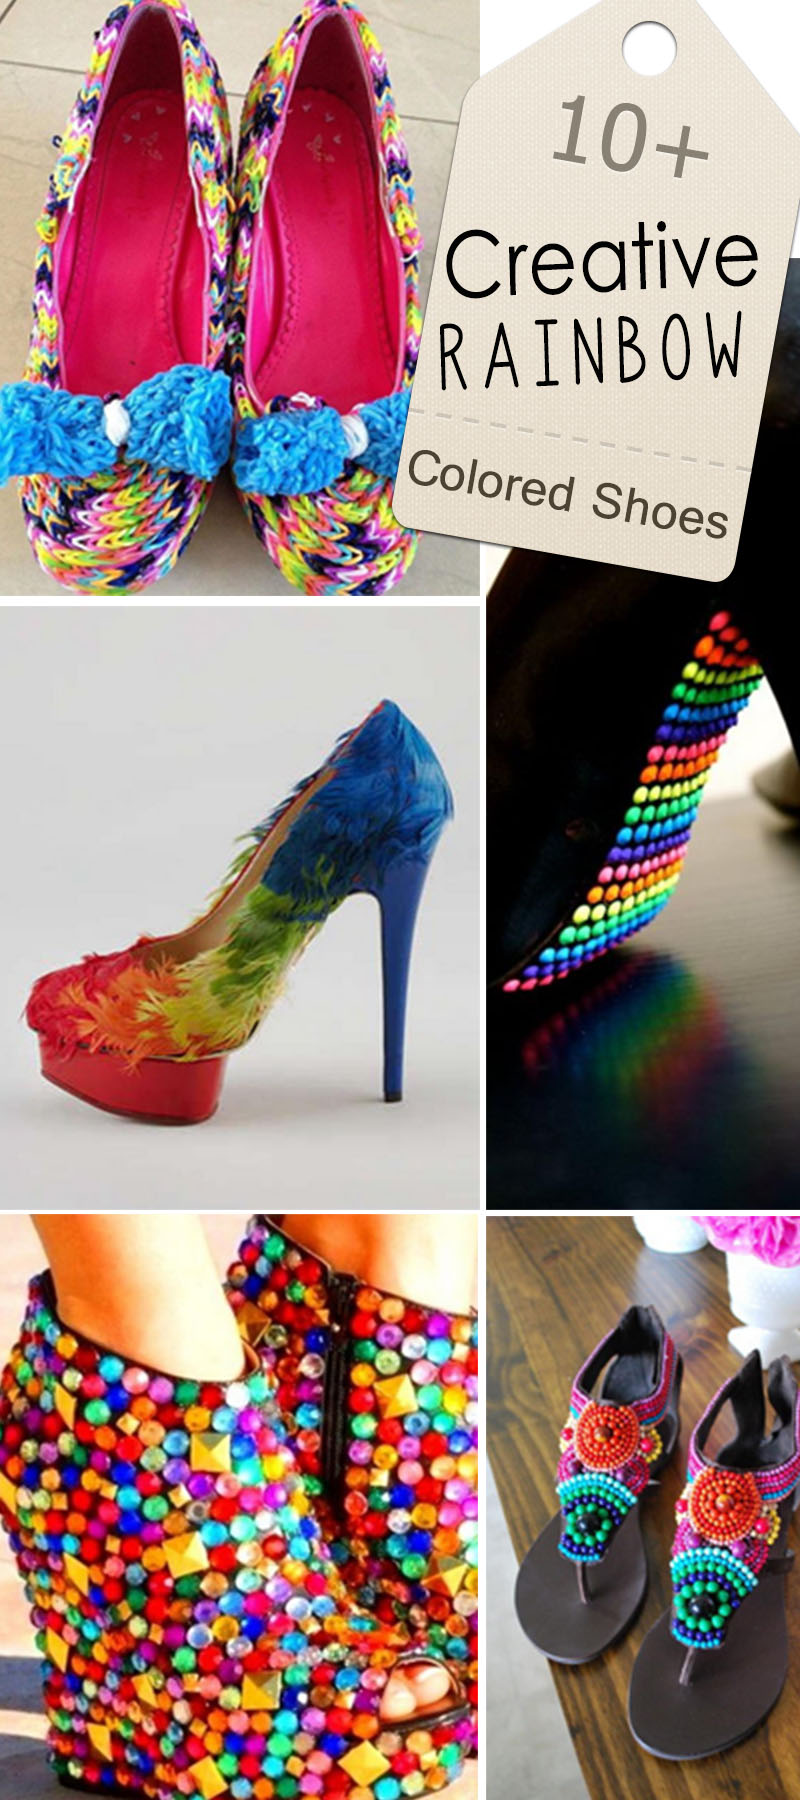 Creative Rainbow Colored Shoes!